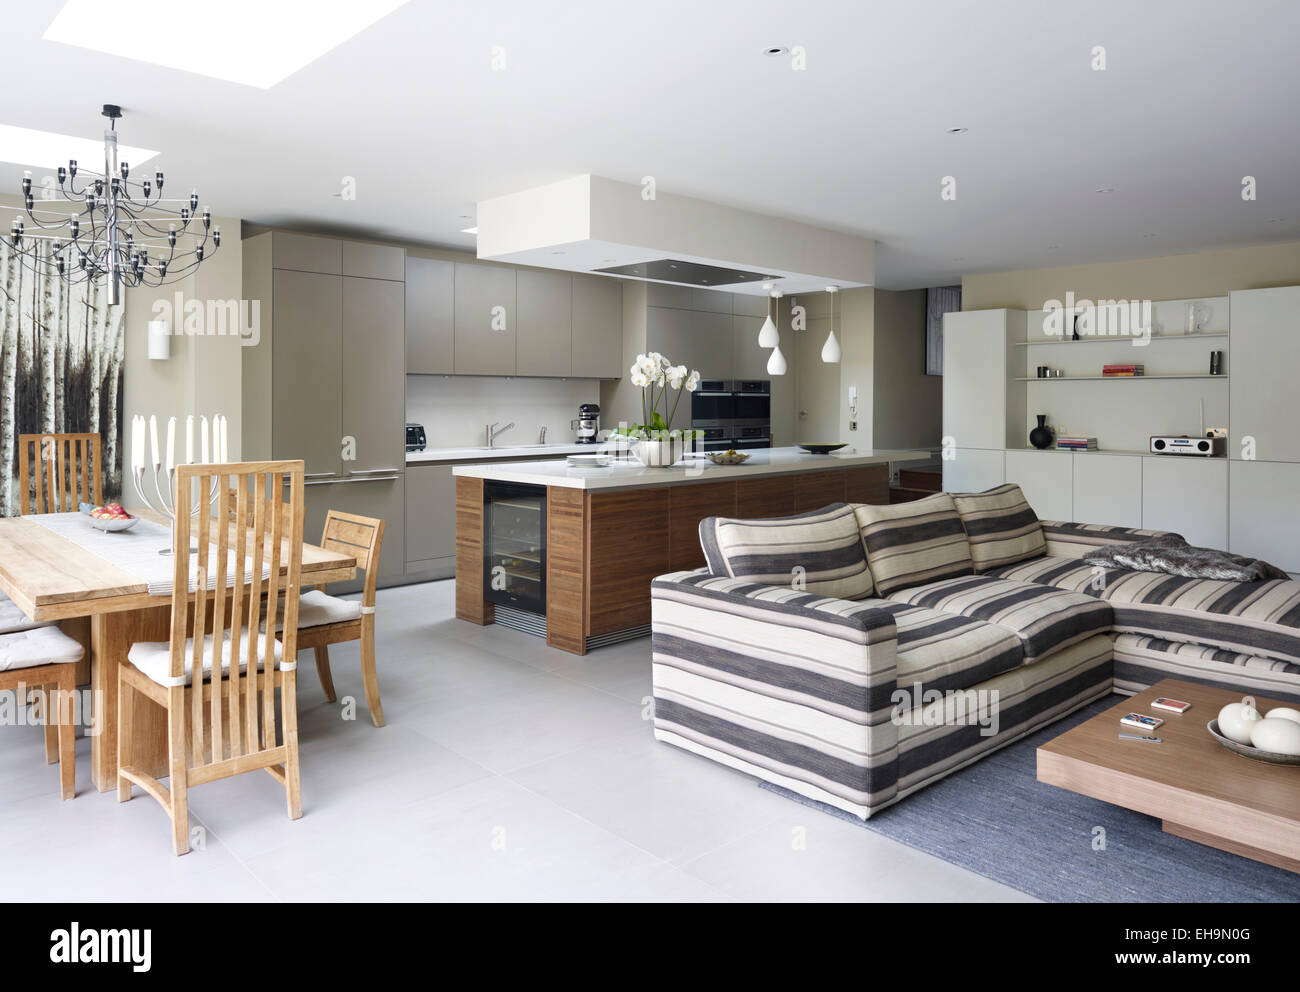 Open Plan Kitchen Ideas Uk modern open plan kitchen, dining area and living area with striped